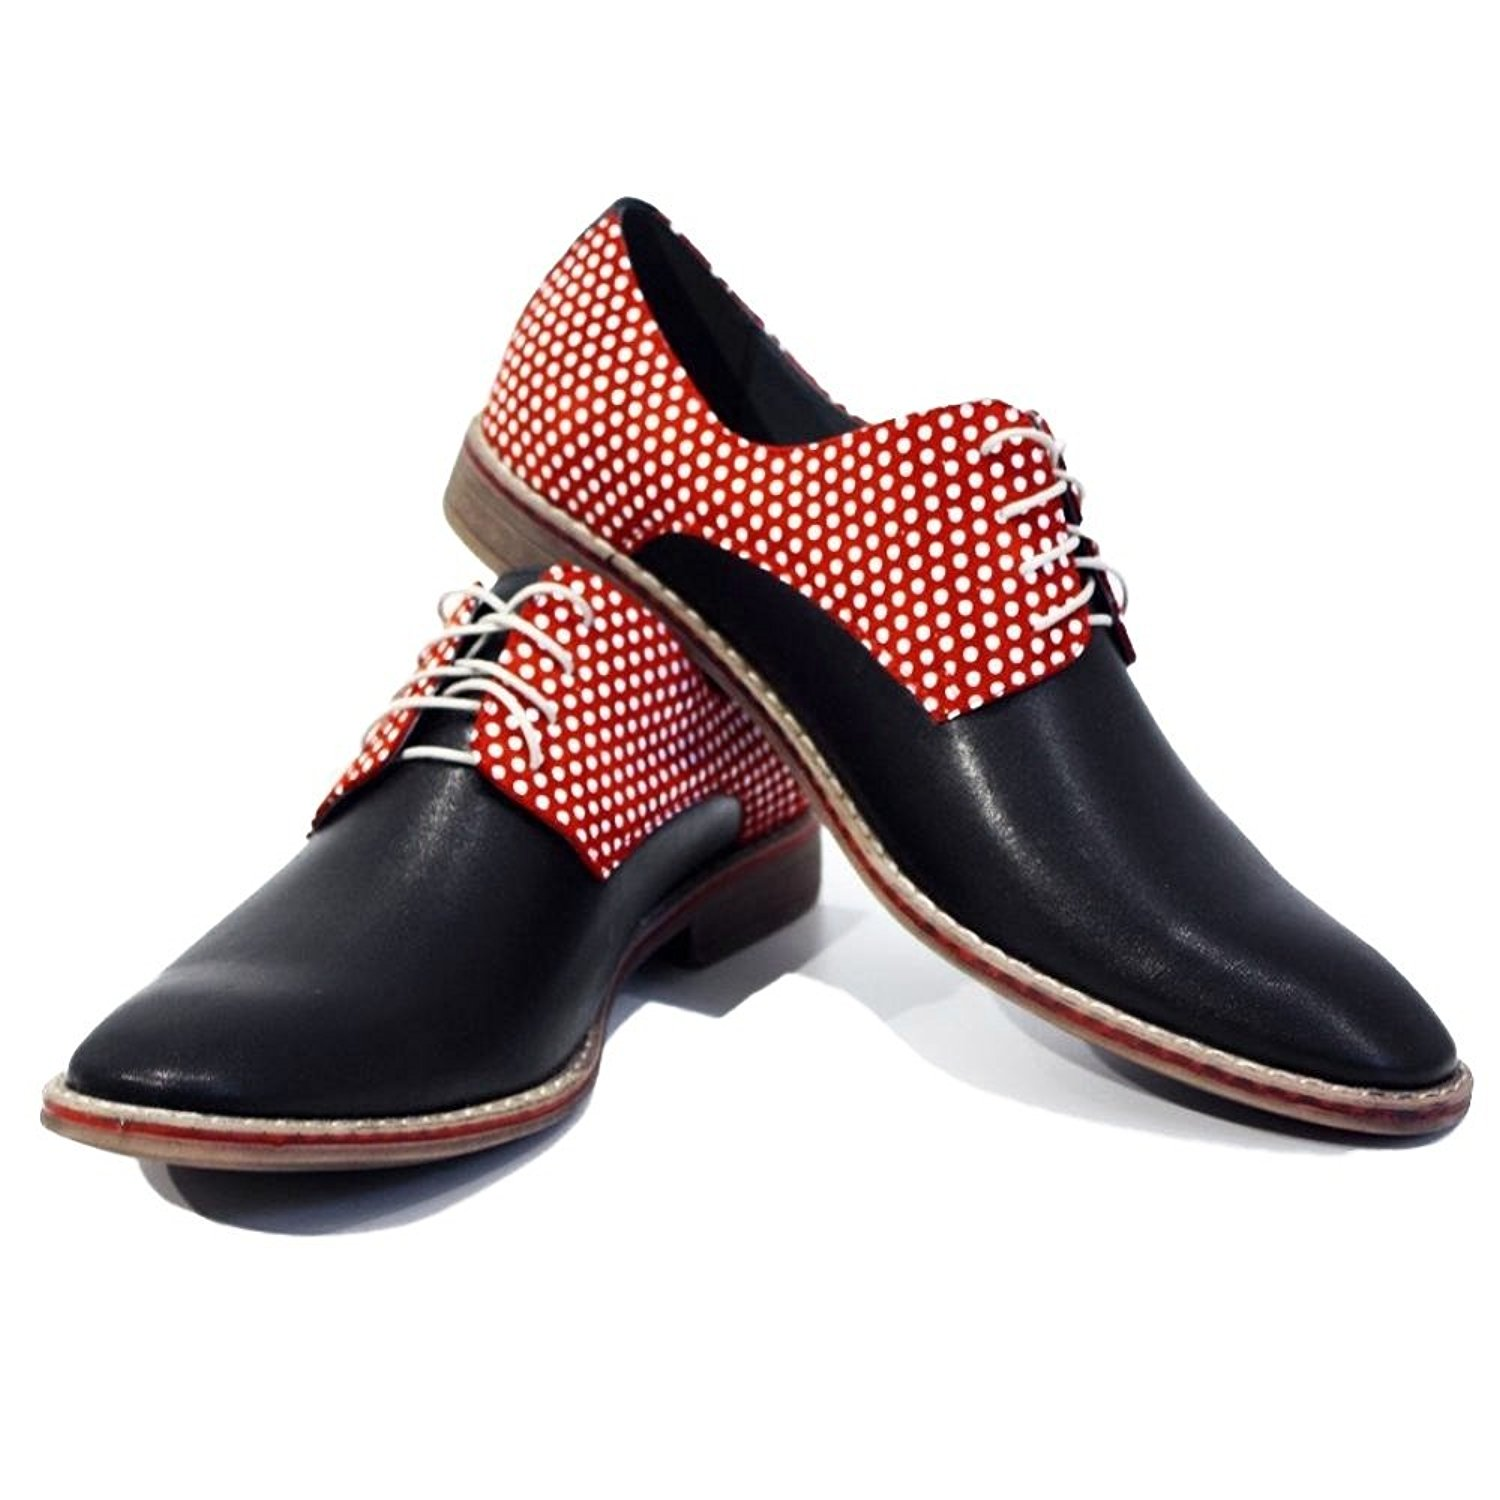 Modello Ragusa - Handmade Italian Mens Red Oxfords Dress Shoes - Cowhide Smooth Leather - Lace-up